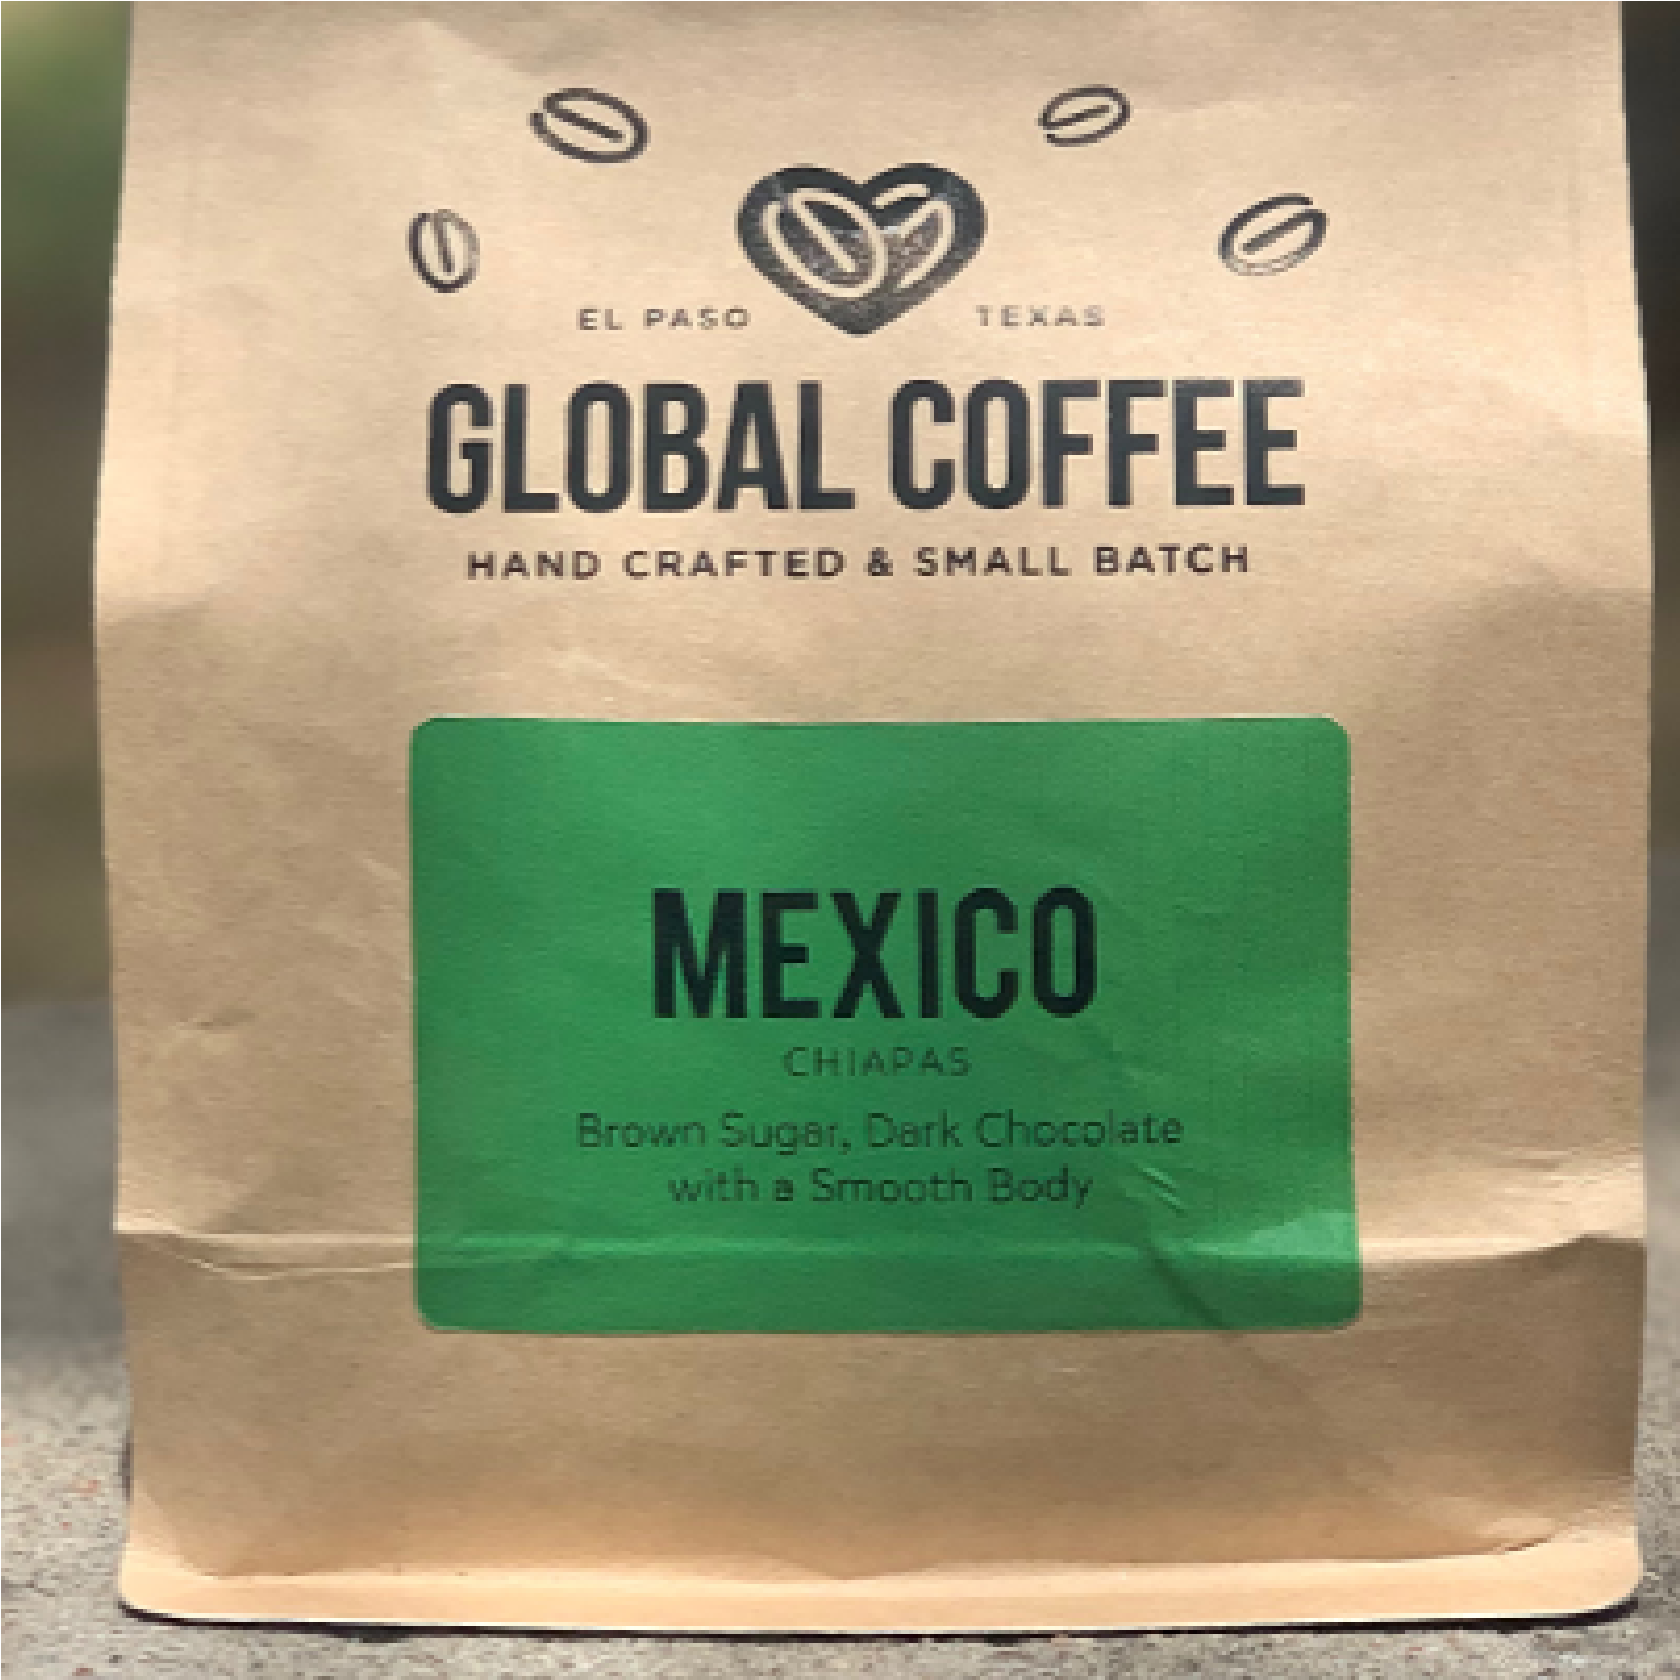 Mexico from Global Coffee